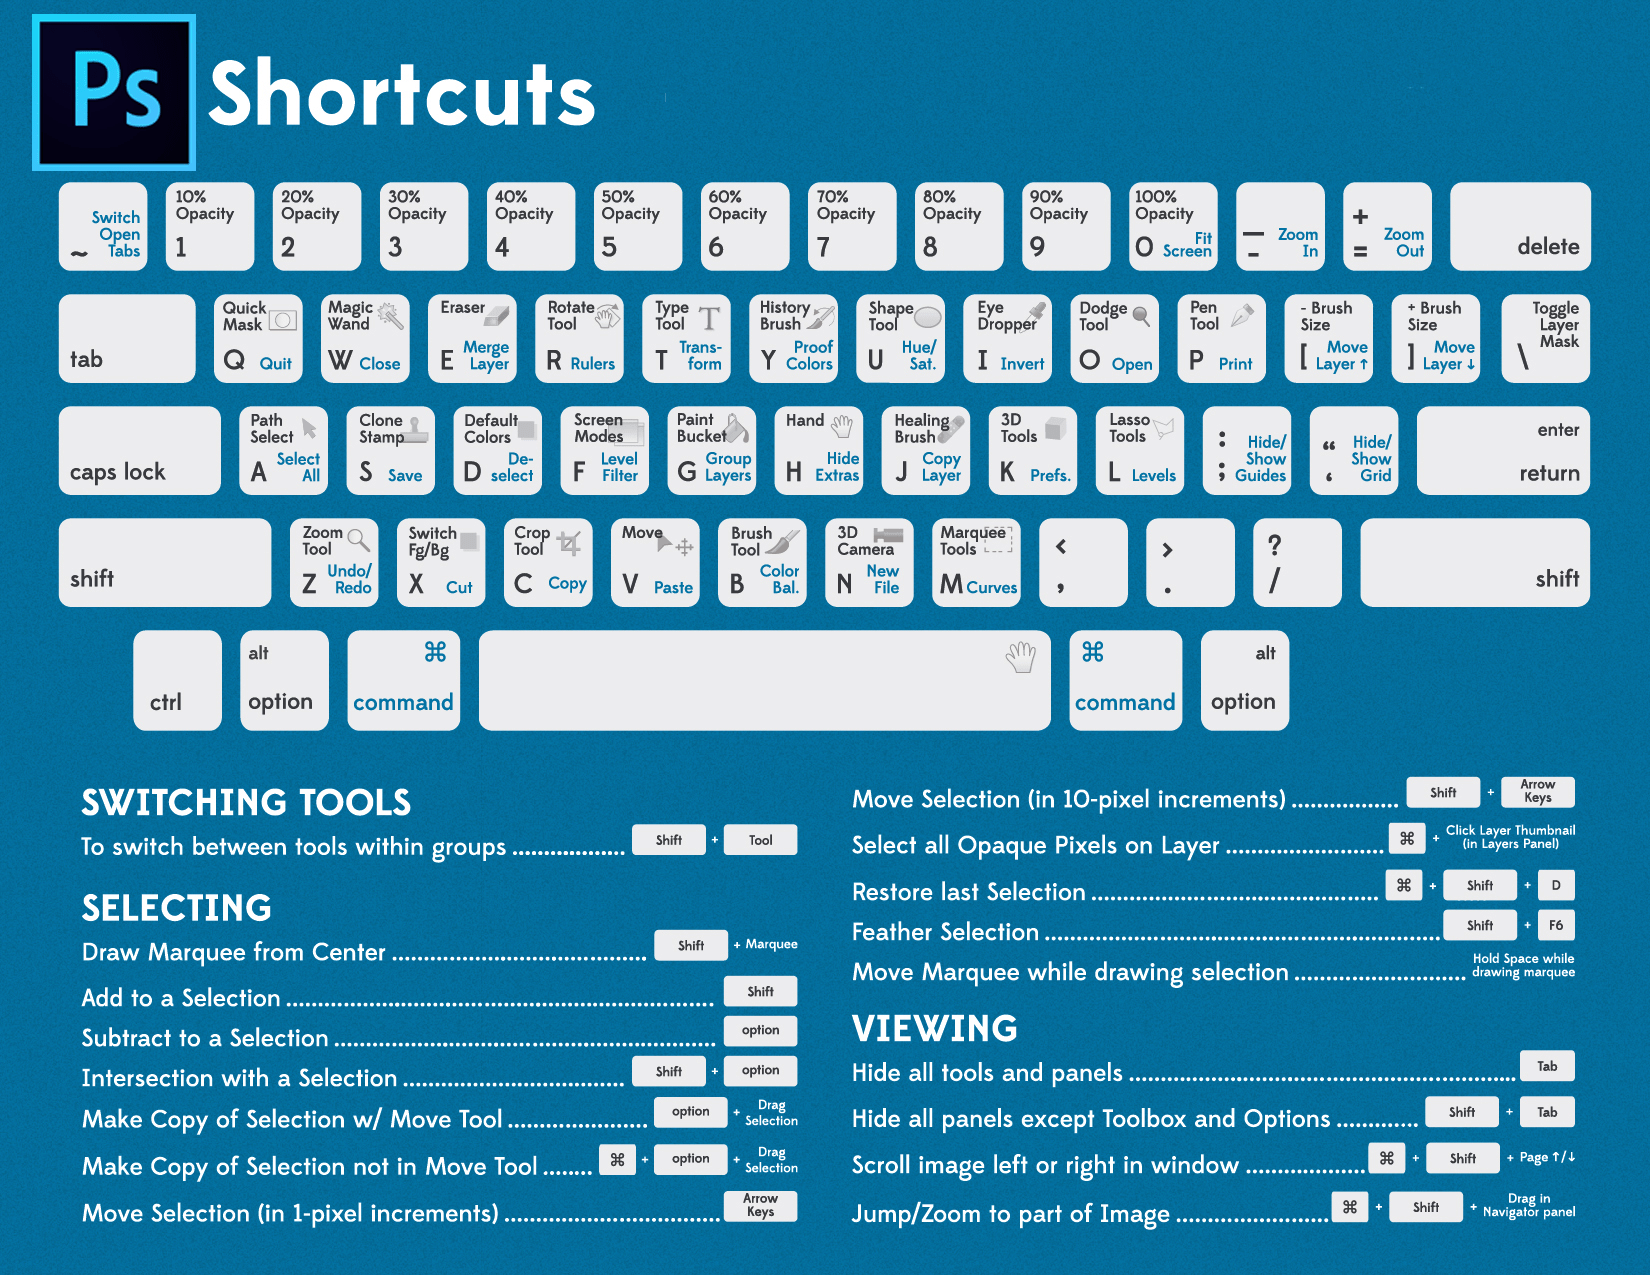 10 Useful Tools and Shortcuts in Photoshop You Probably Aren